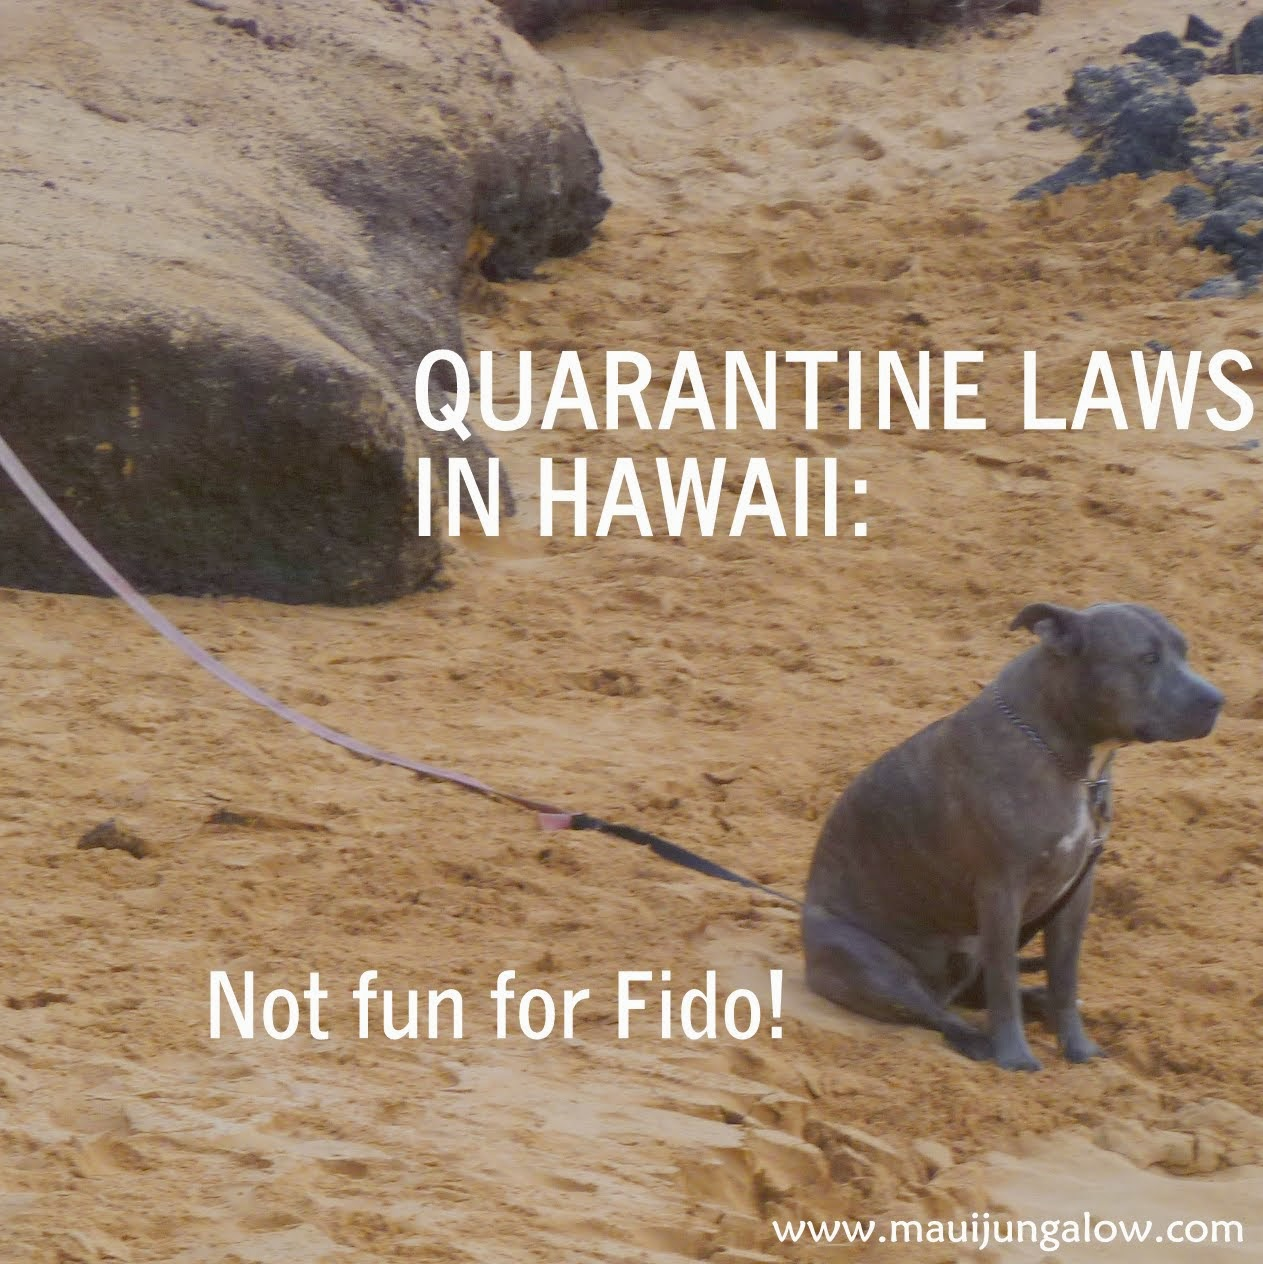 Maui Jungalow: Quarantine in Hawaii (Not Fun for Fido!)